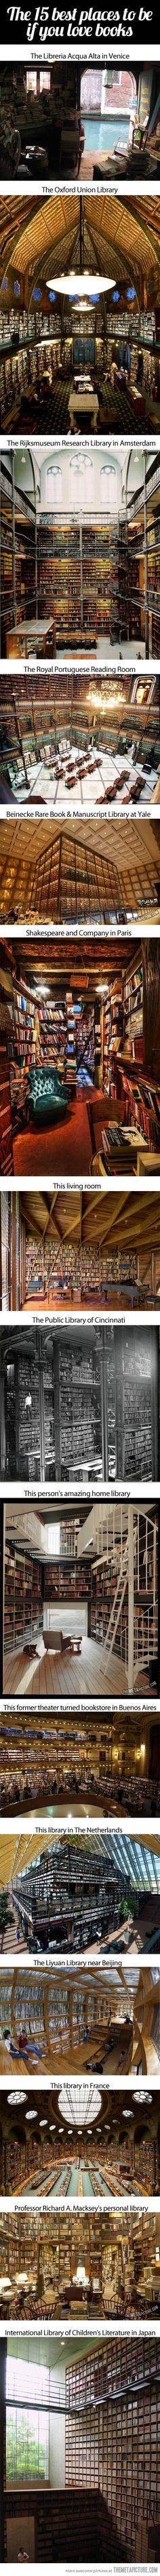 If you love books, these places will blow your mind…